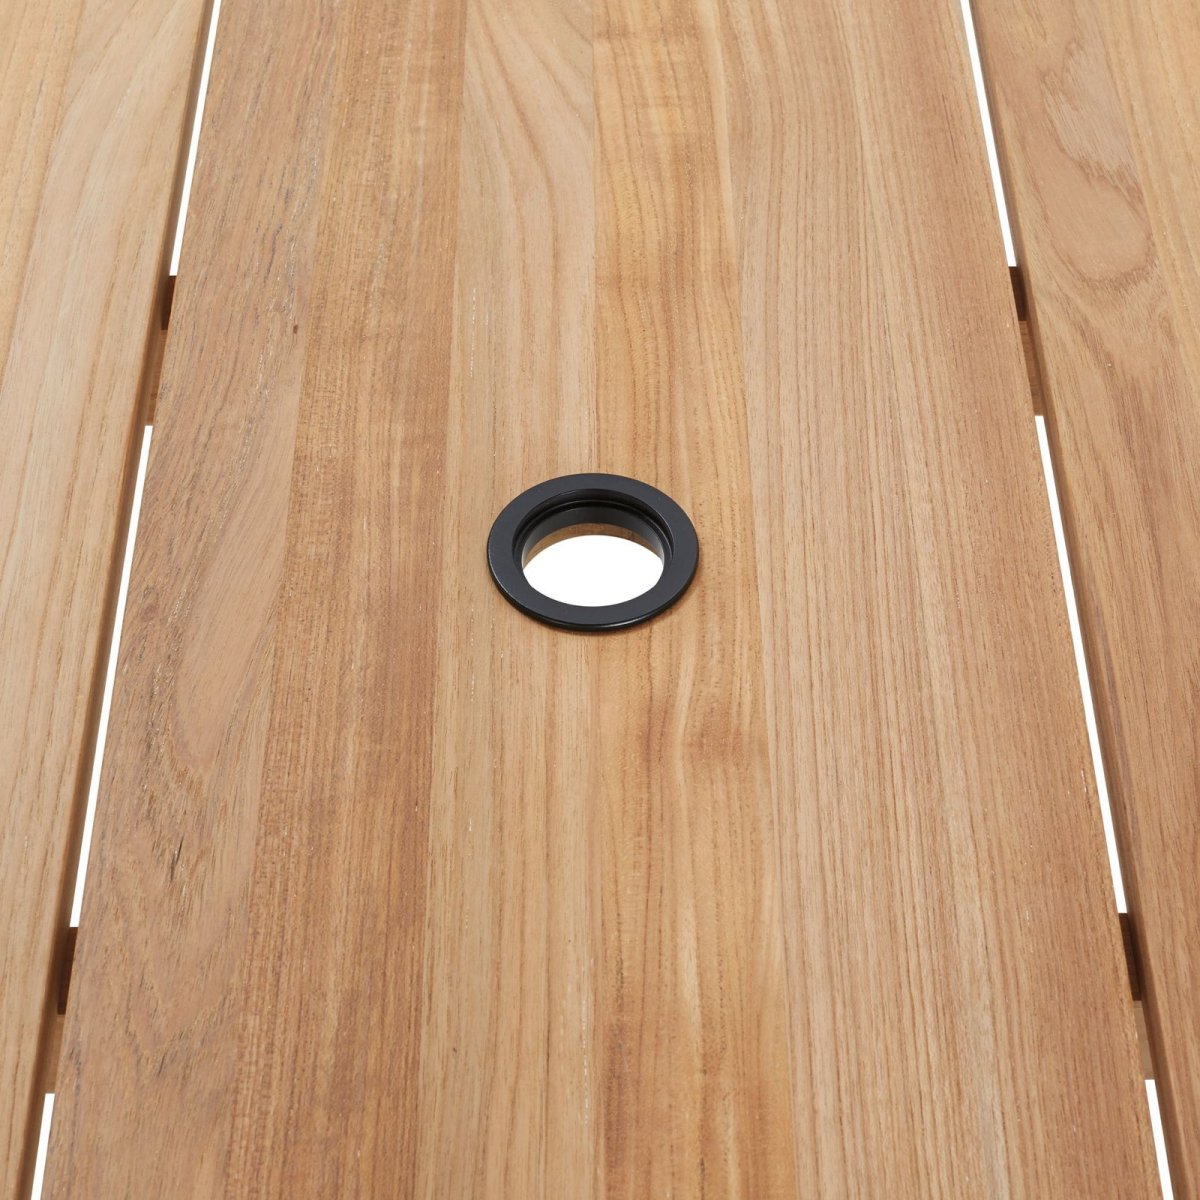 Terassi Dining Table, removable plug to accommodate umbrella.